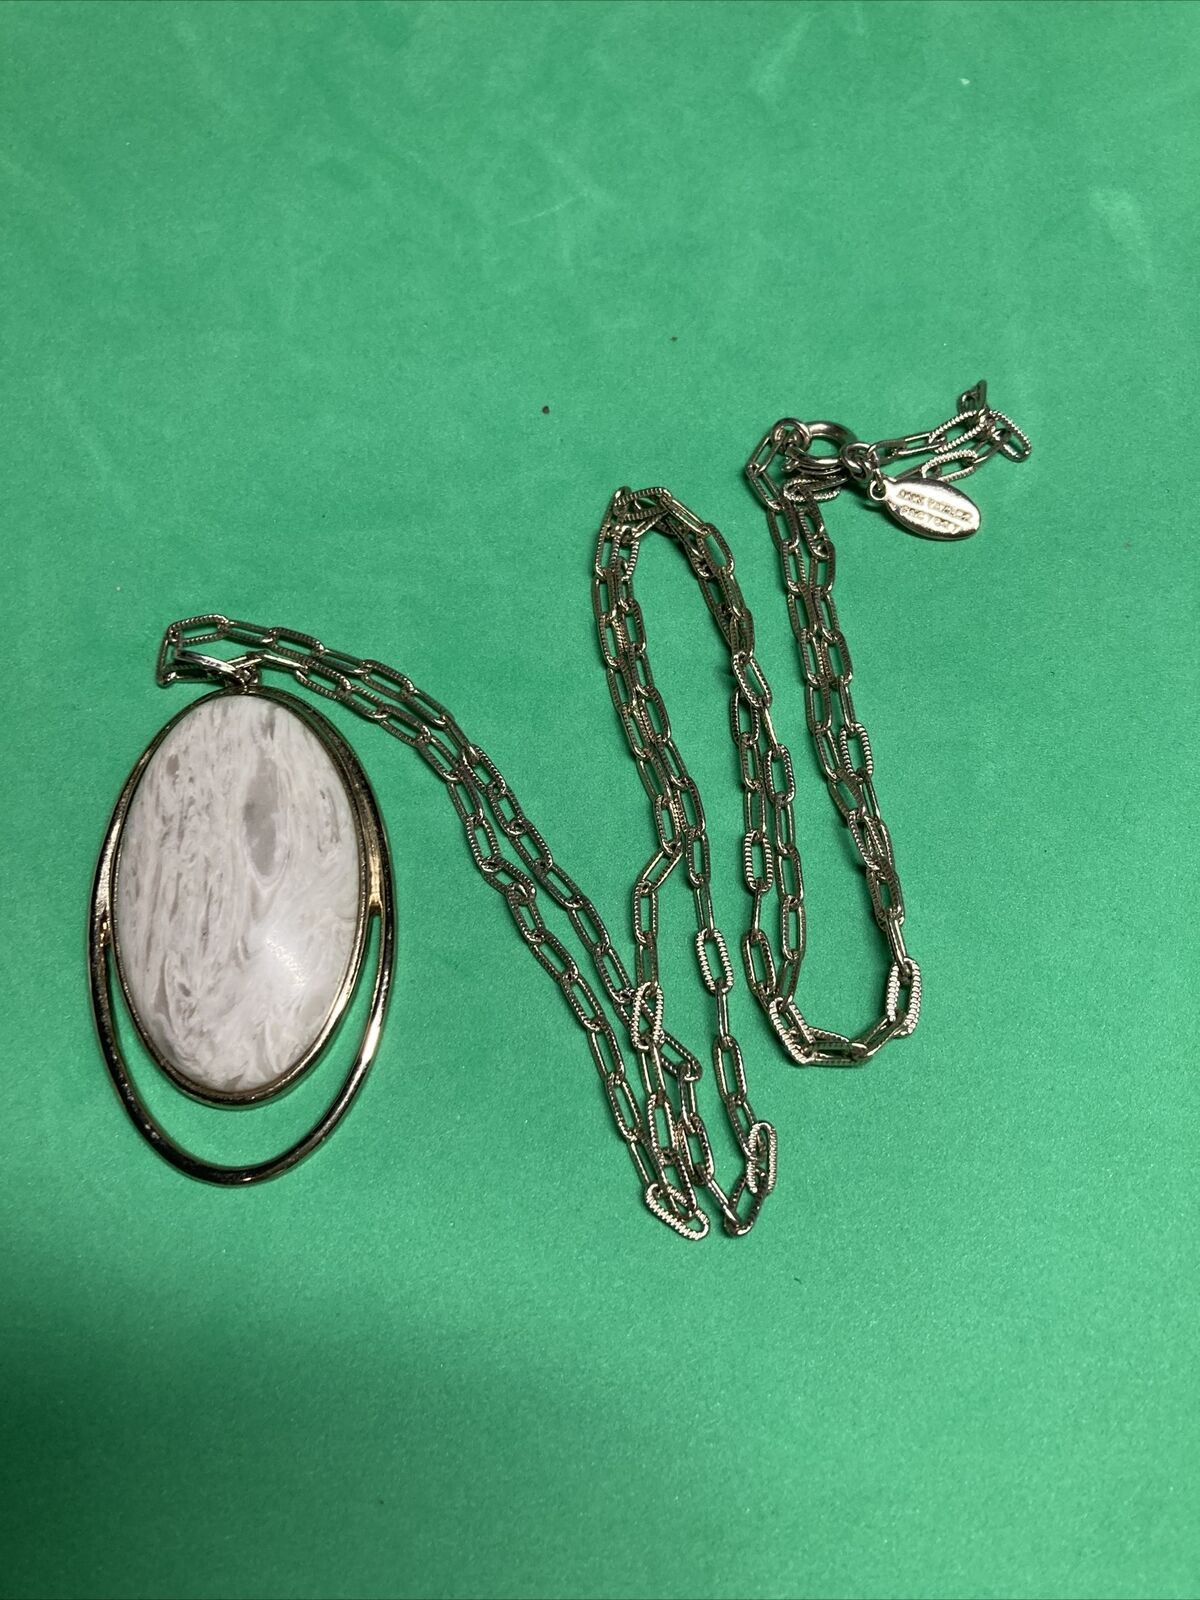 ann taylor factory necklace silver tone 30 long chain B40